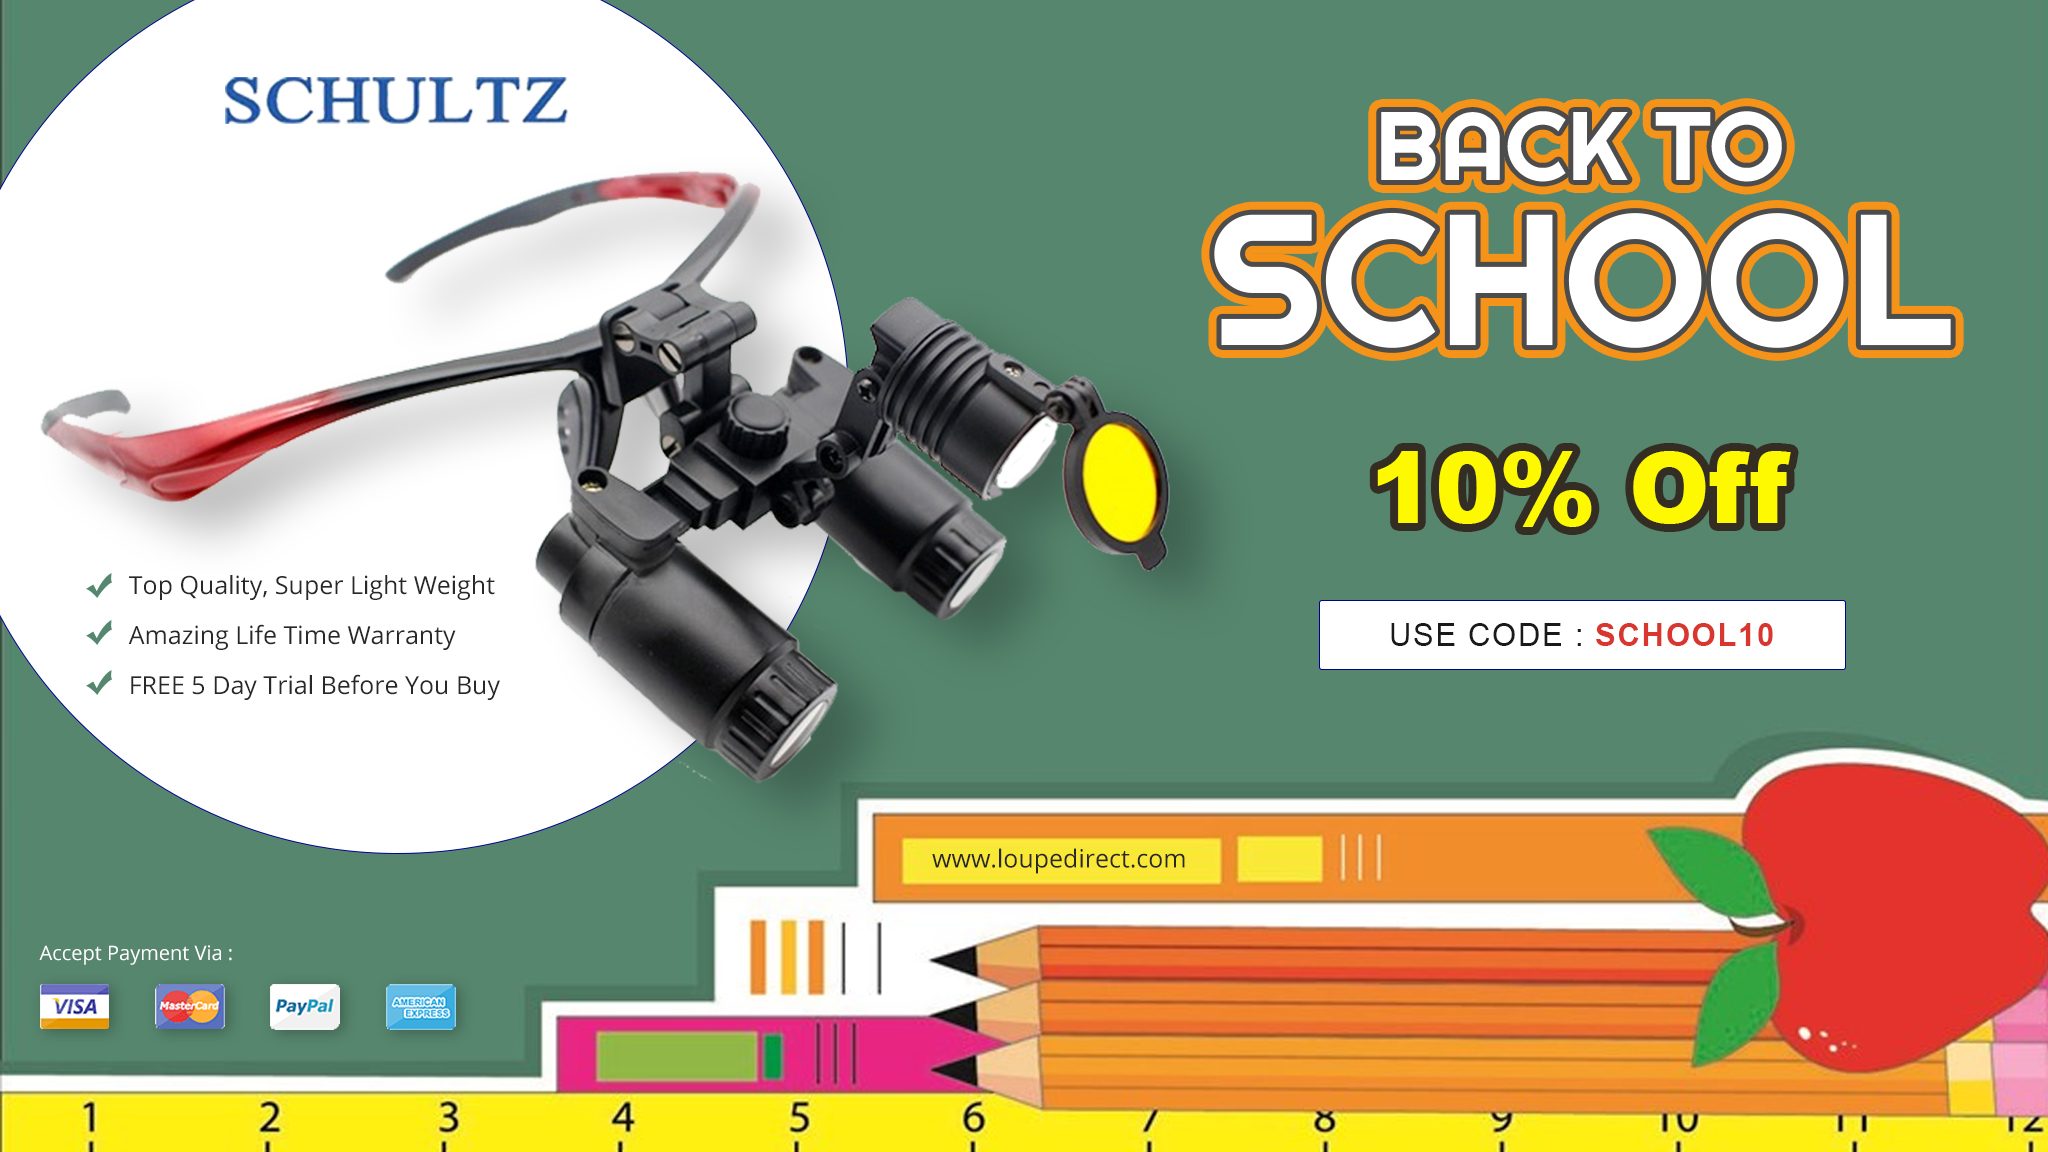 Back to School Sale at Schultz Optical: Use Promo Code SCHOOL10 to Get a 10% Discount